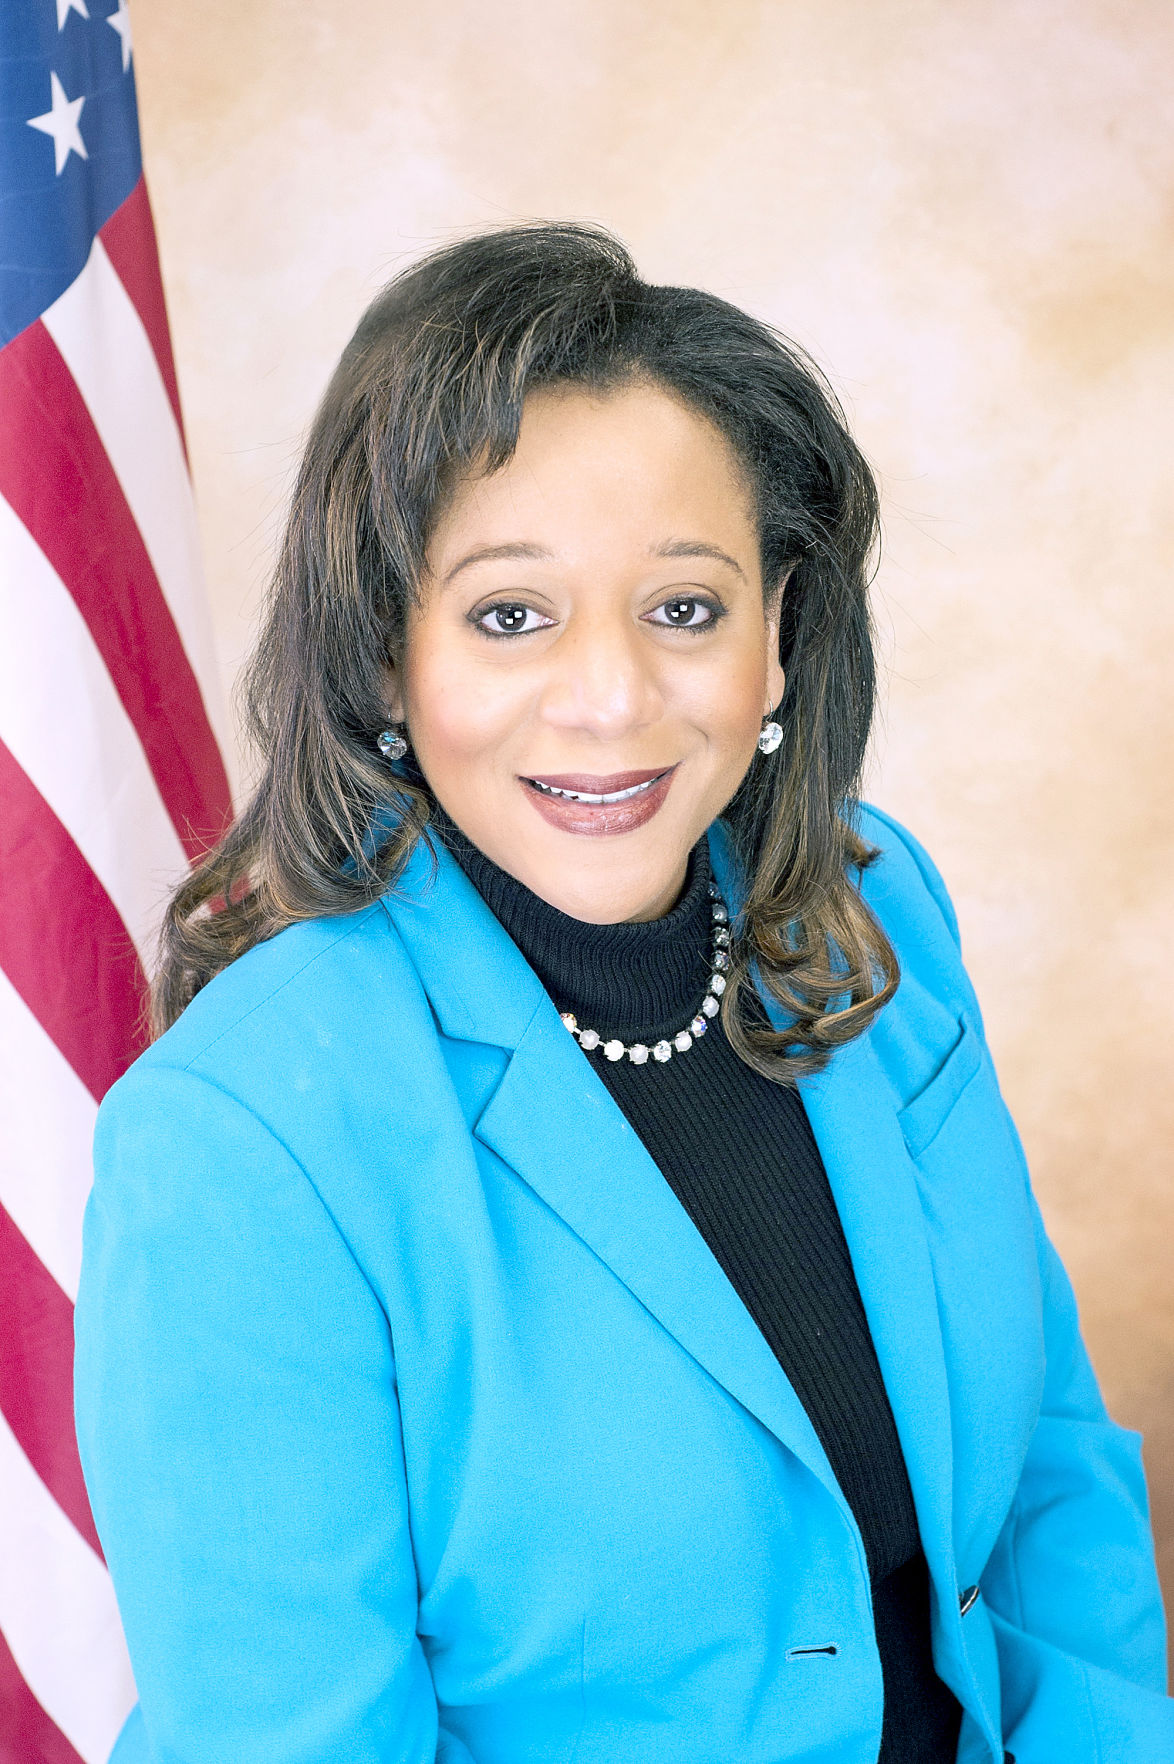 NAACP to honor district judge